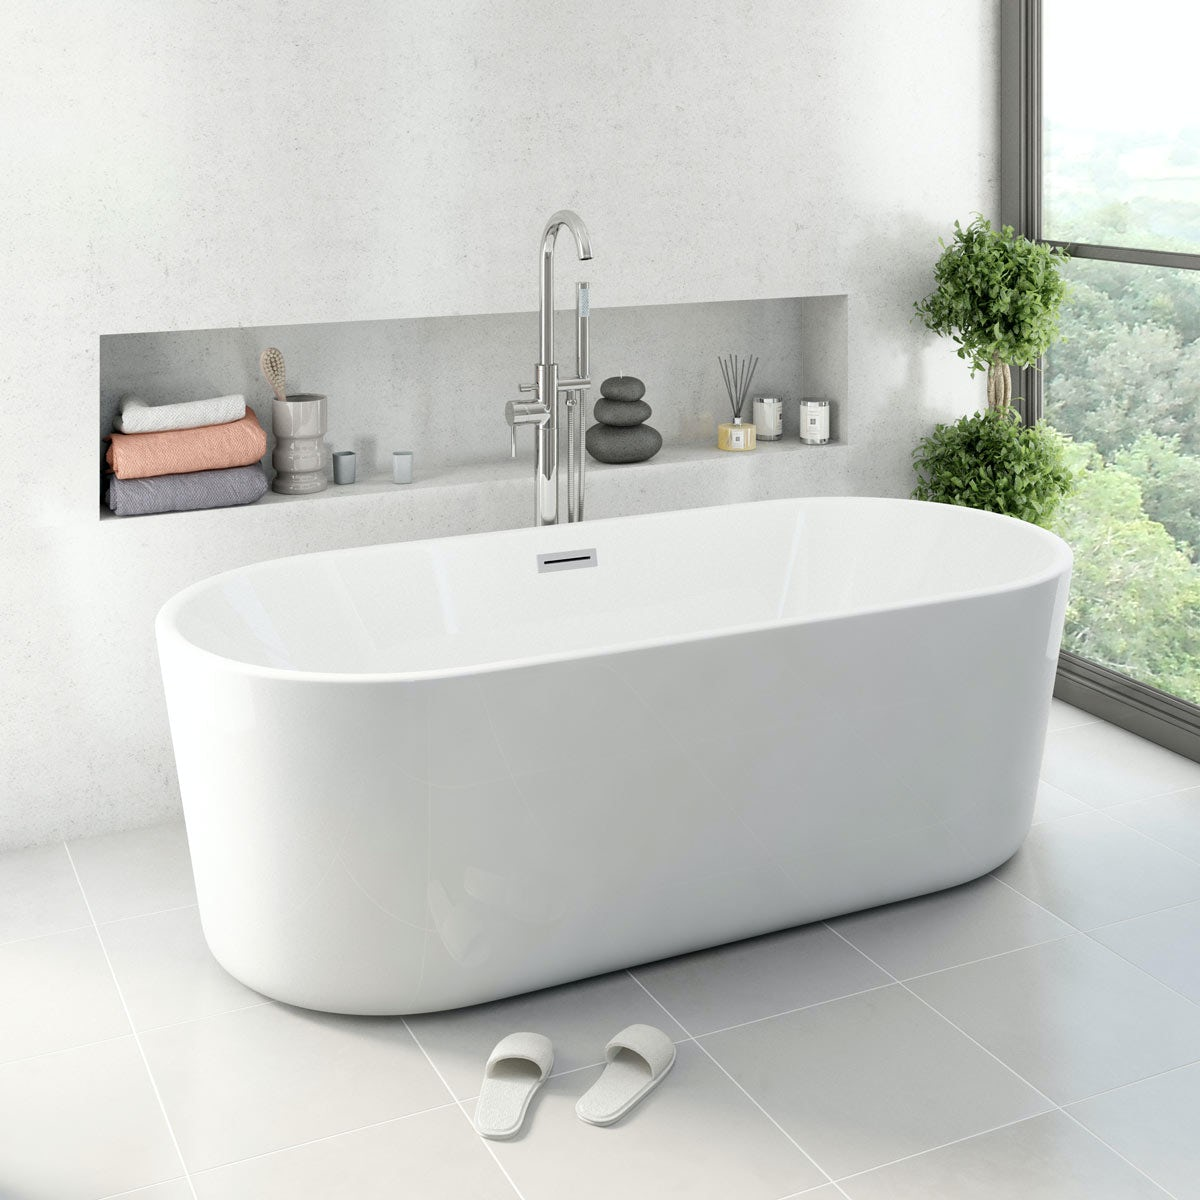 Arte freestanding bath